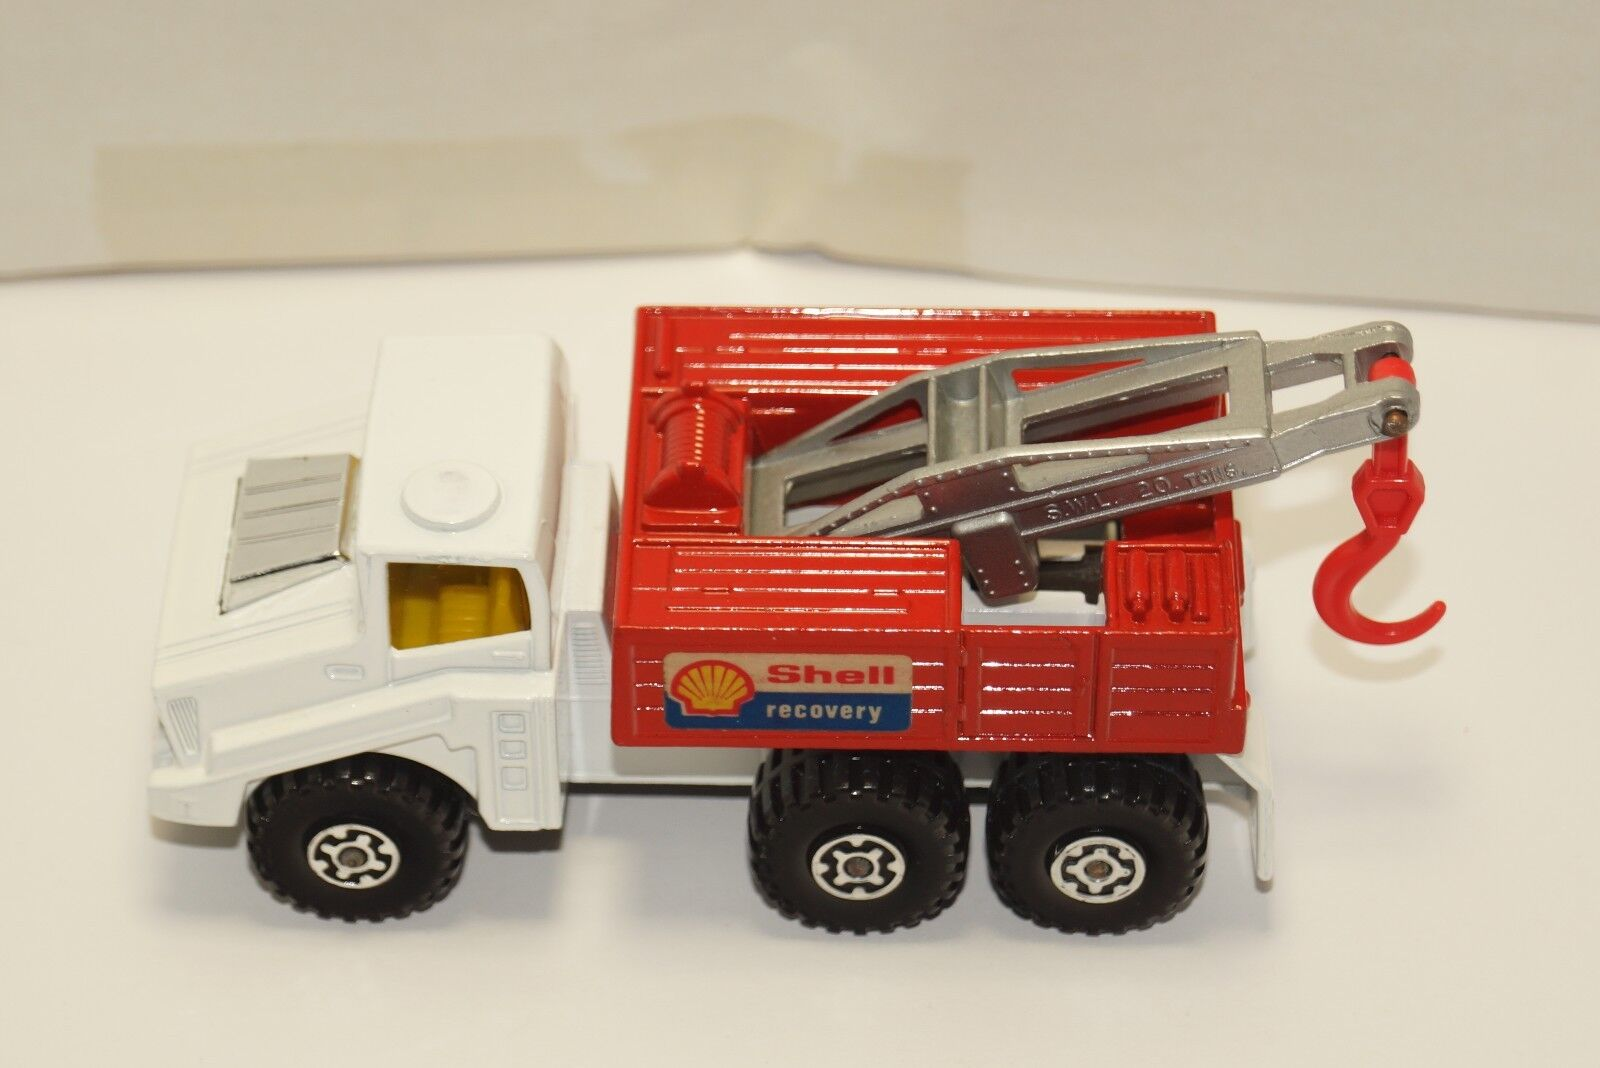 ORIGINAL Matchbox - Super Kings - Battle Kings - K-14 K-110 - Recovery Vehicle